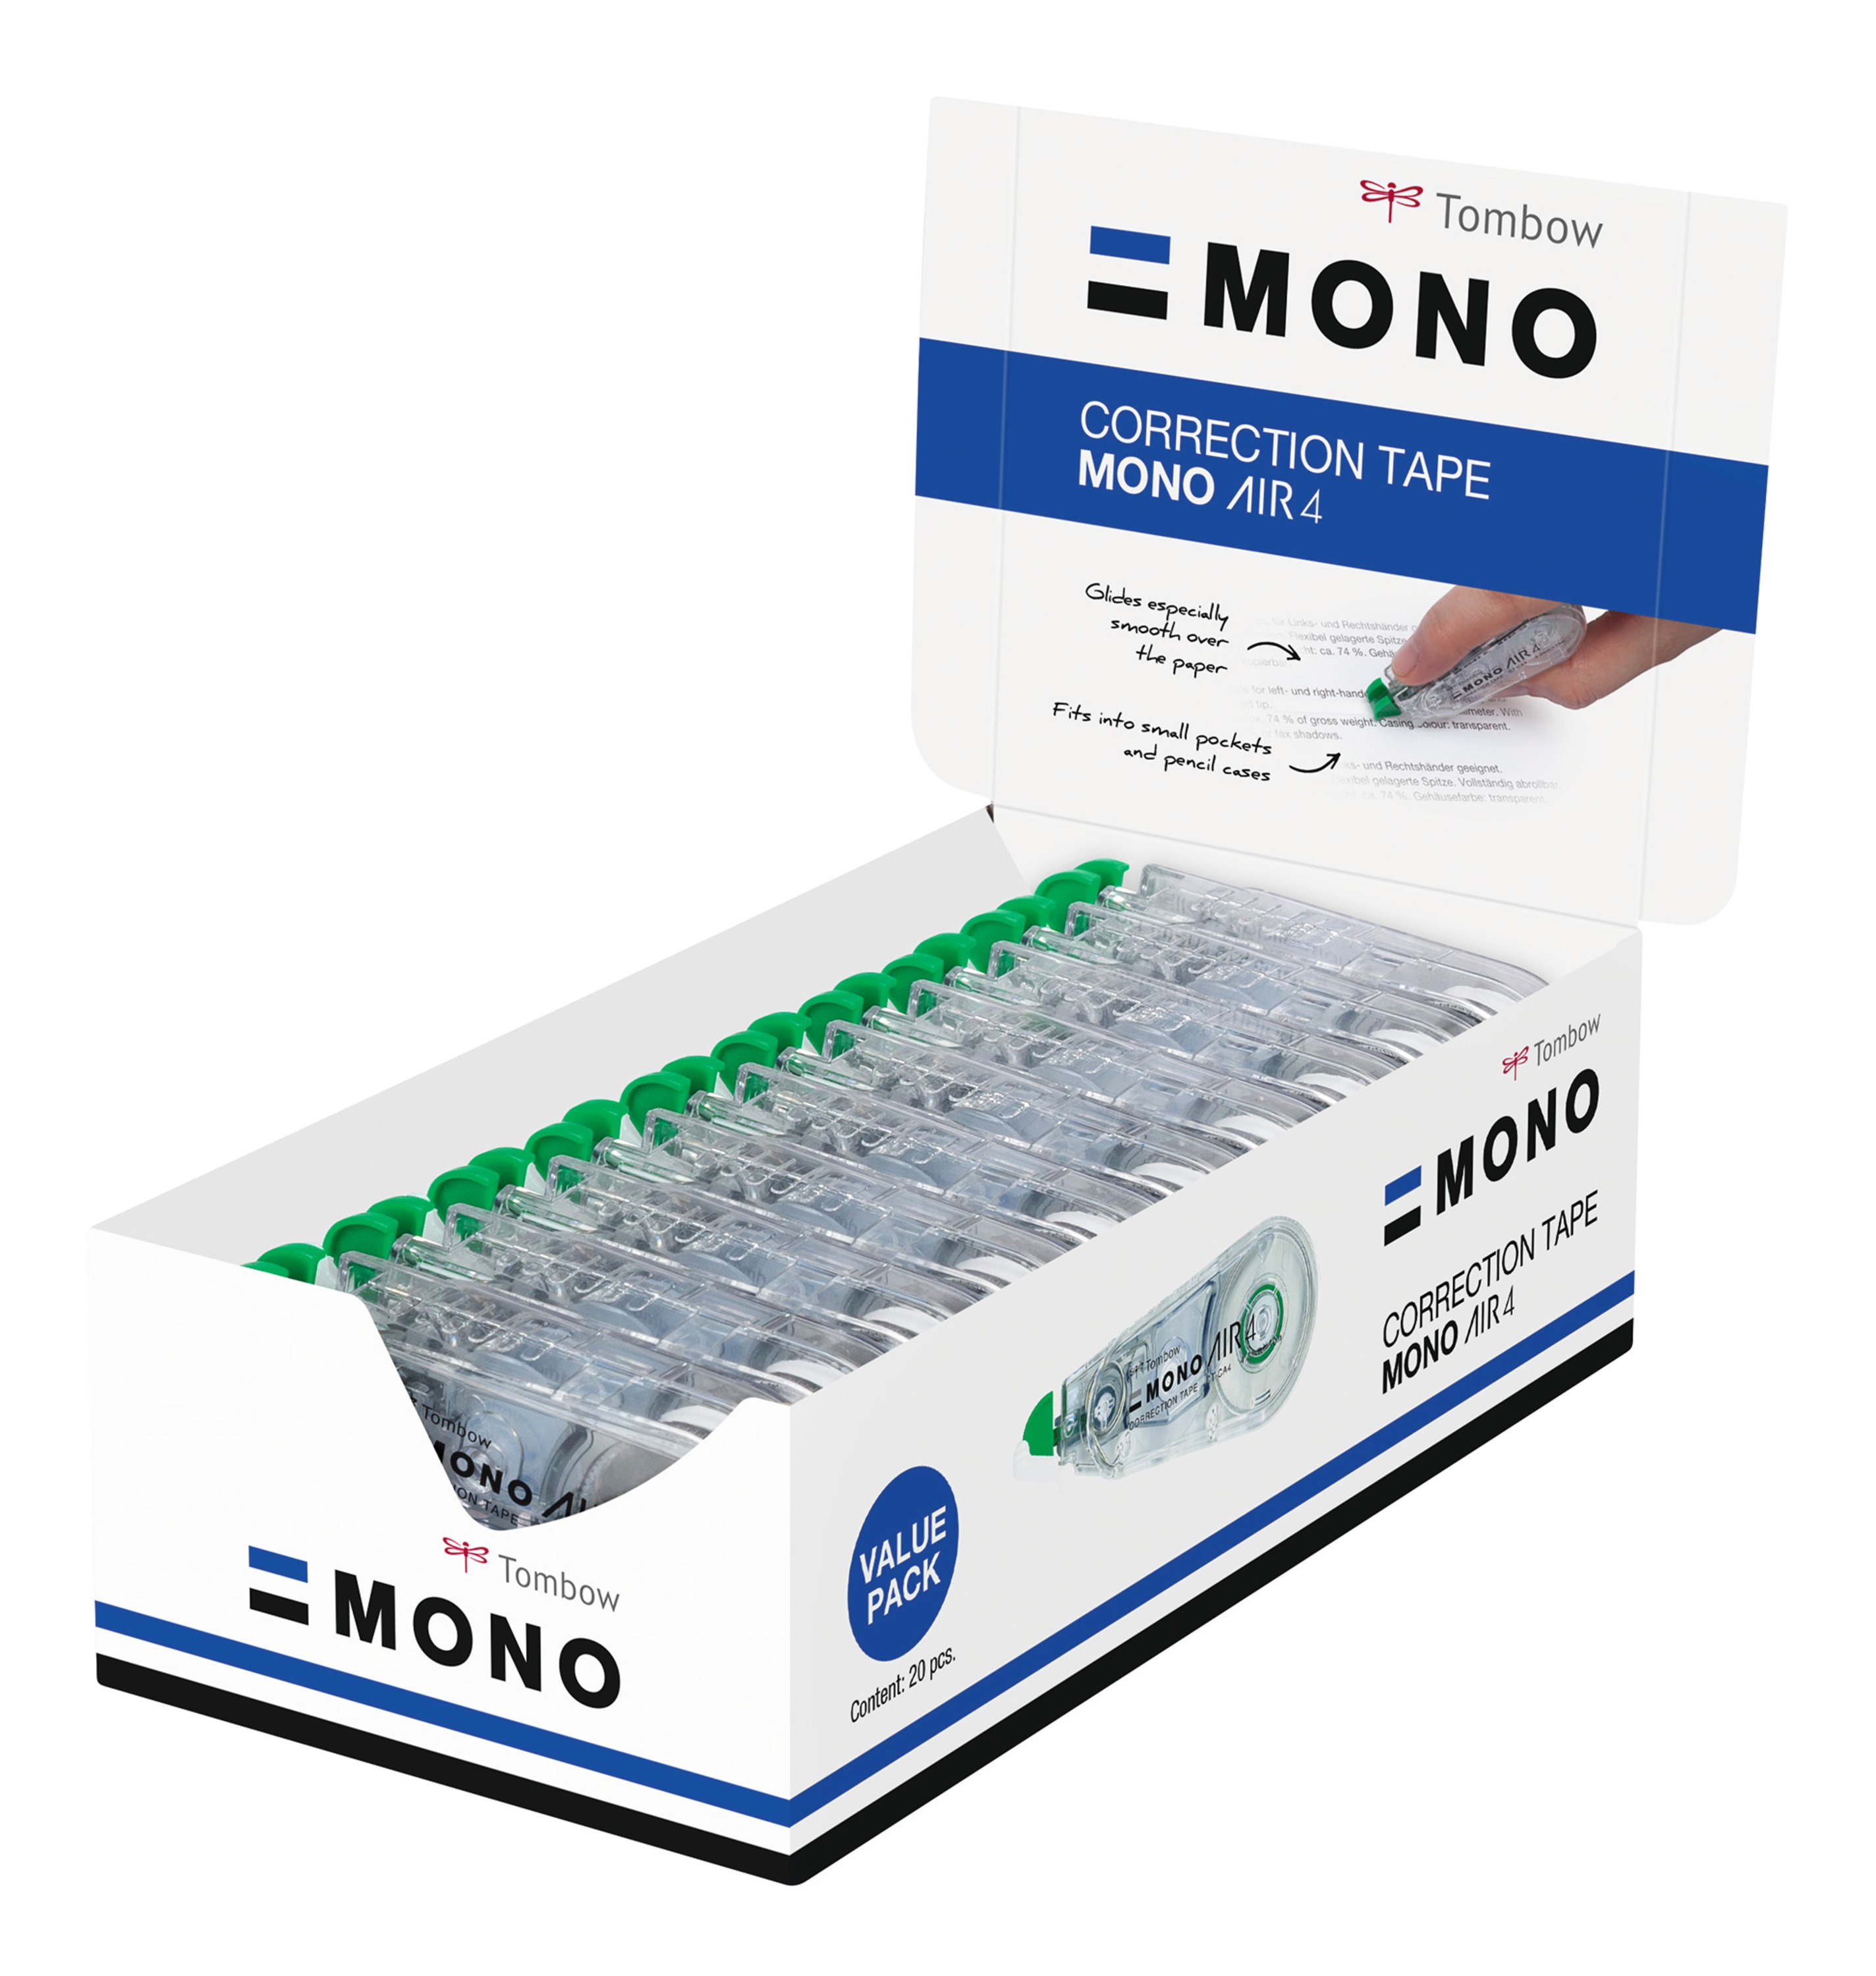 Correction Tape Tombow MONO Air Correction Tape Roller 4.2mmx10m White (Pack 15 Plus 5)